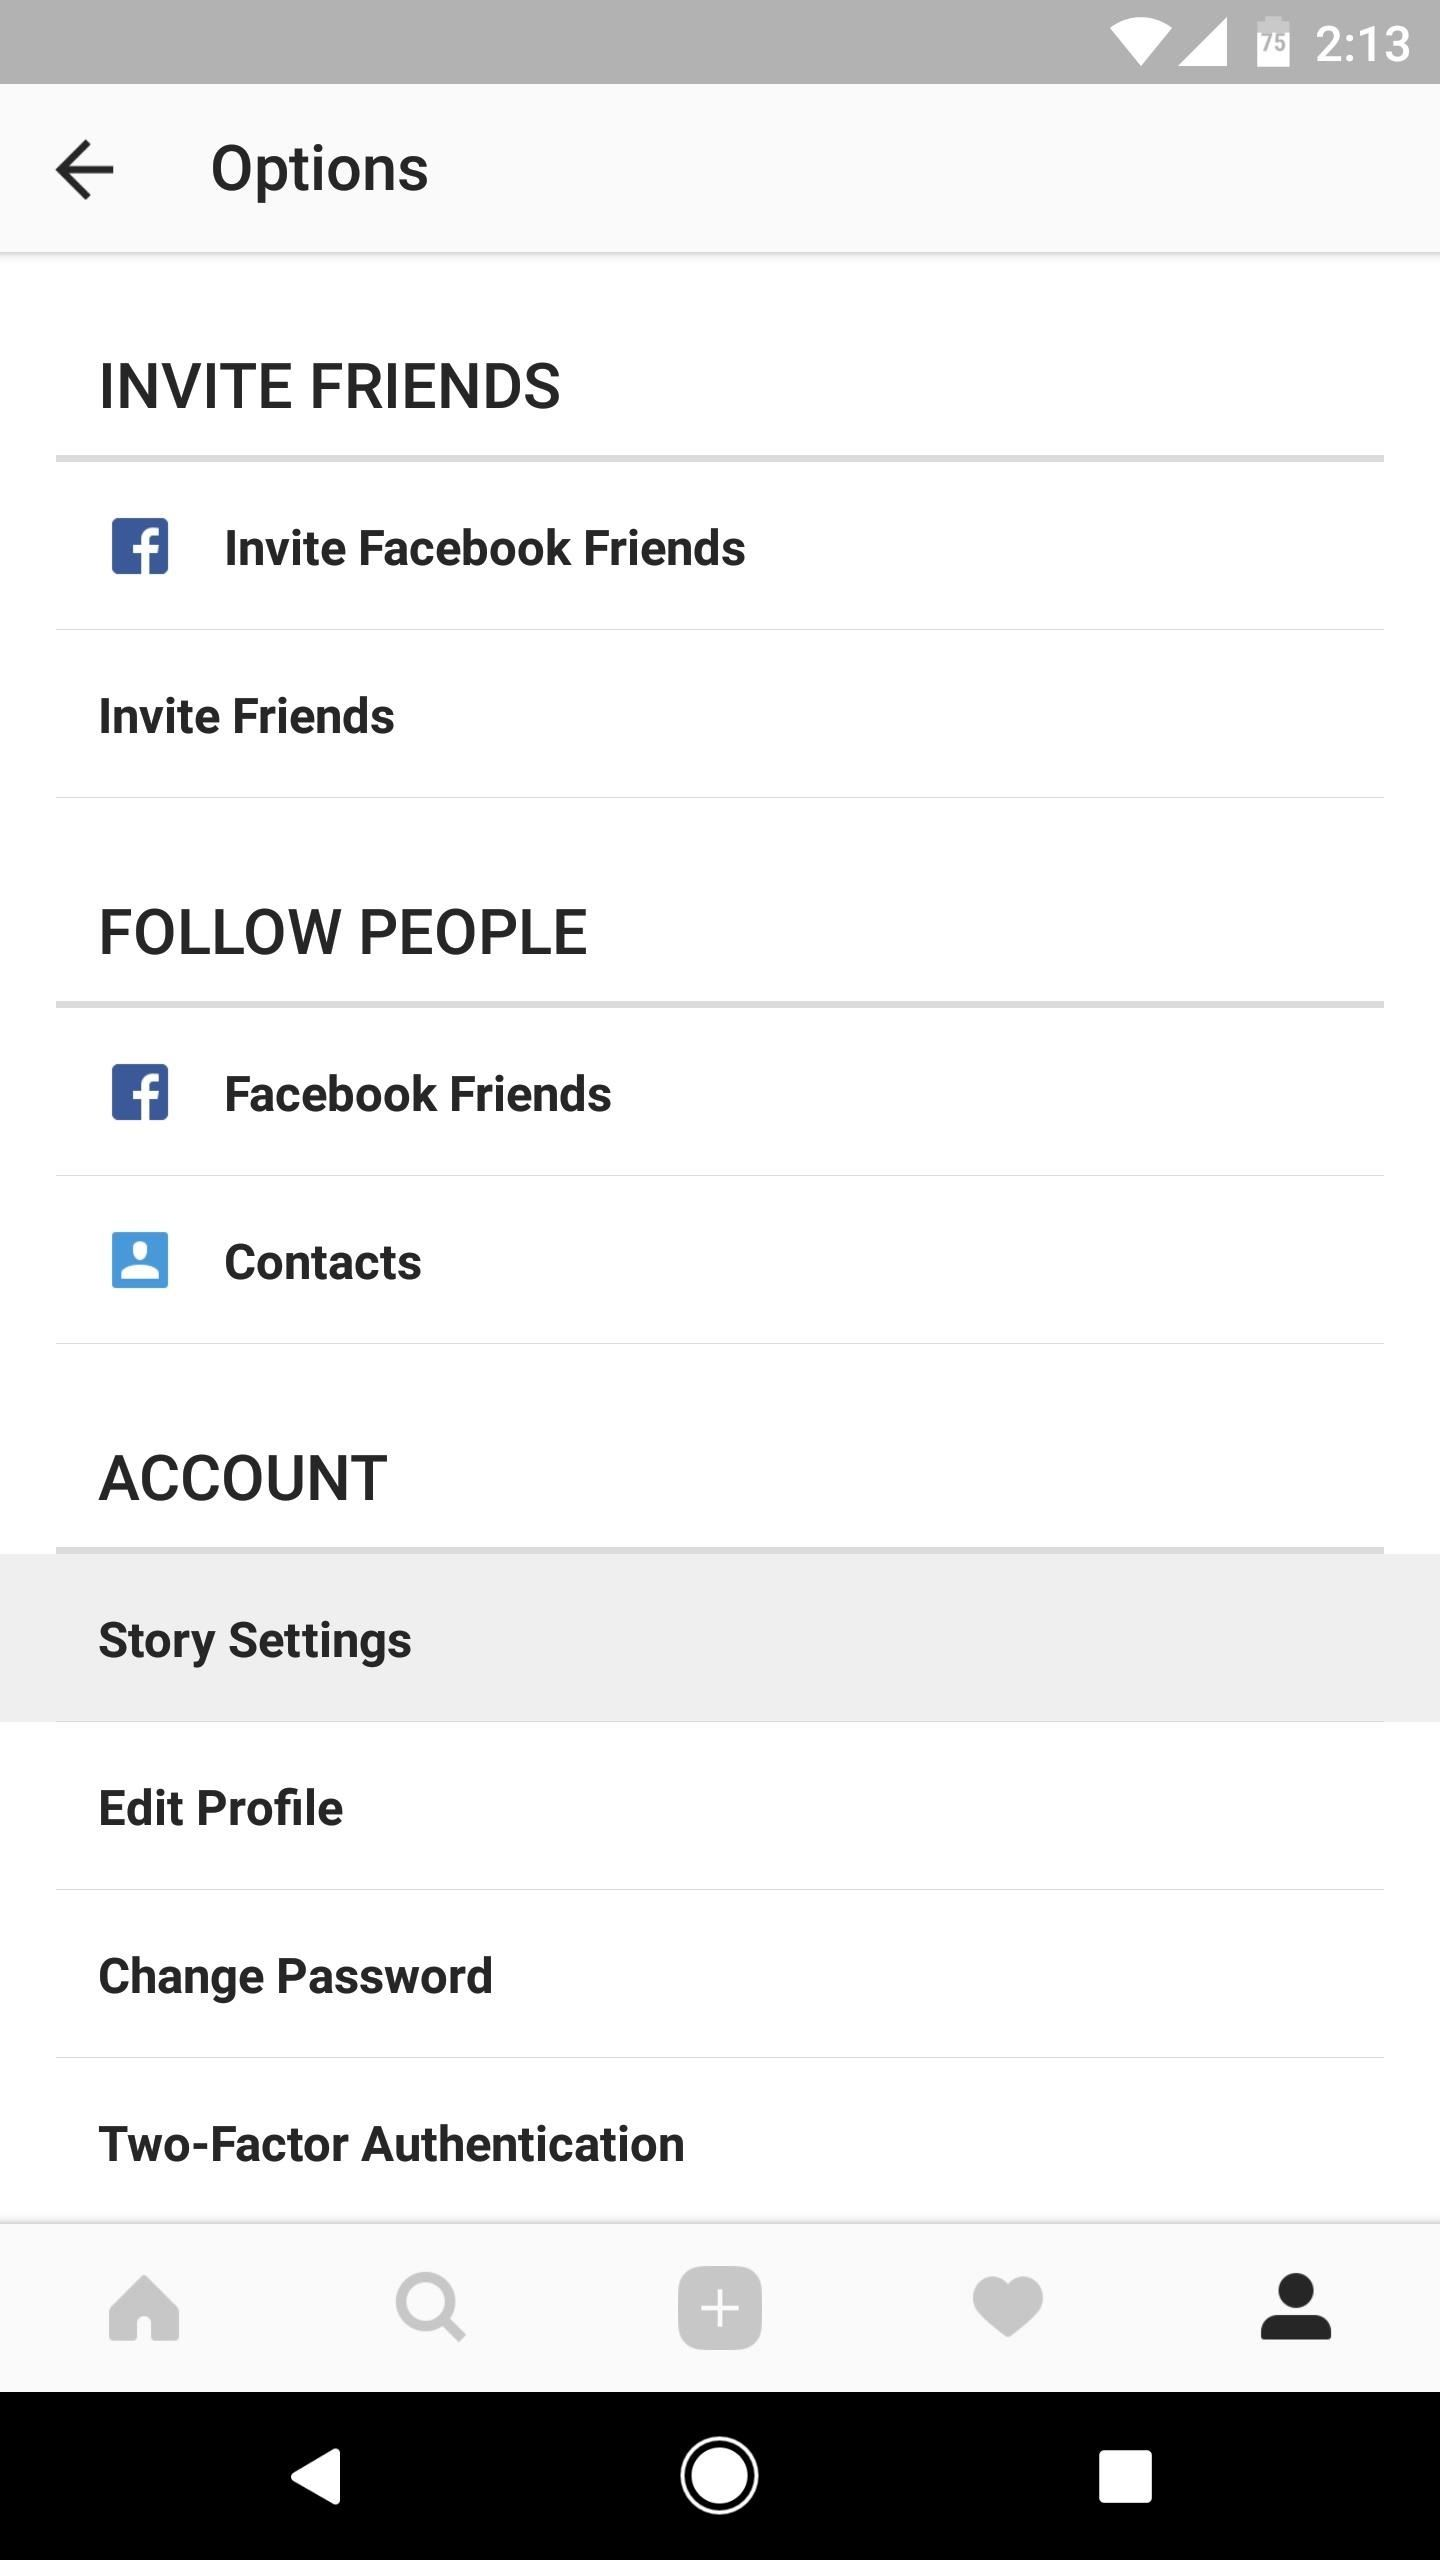 Secure Your Instagram Account by Adding 2-Factor Authentication & Managing Privacy Settings